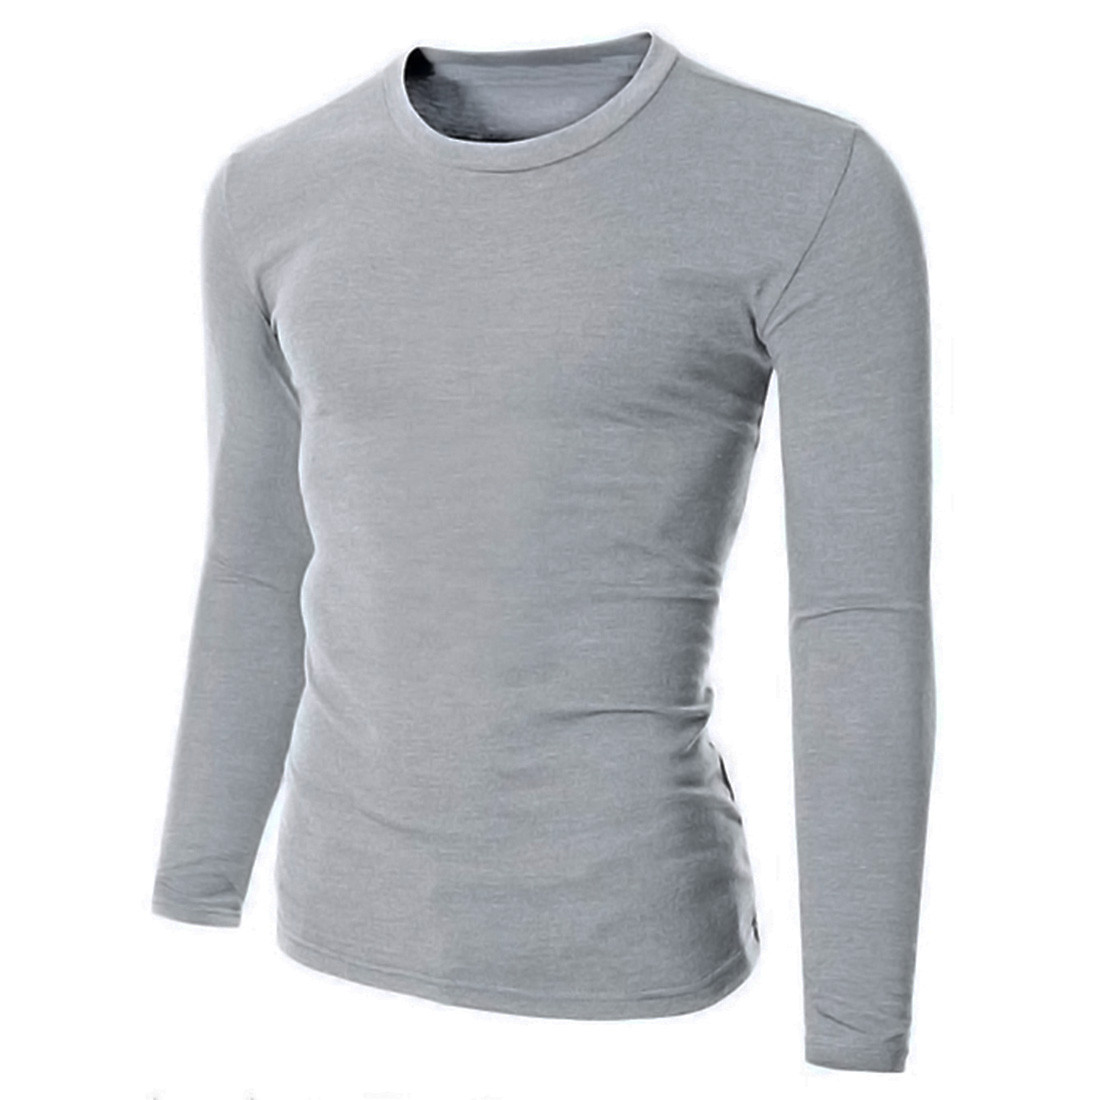 7db9e6972c4 Product Description  Mens Fashion Crew Neck Long Sleeves Plain T-Shirt Slim  Fit Casual Shirt Top Basic Tee Package included  1 Shirt Brand  INCERUN